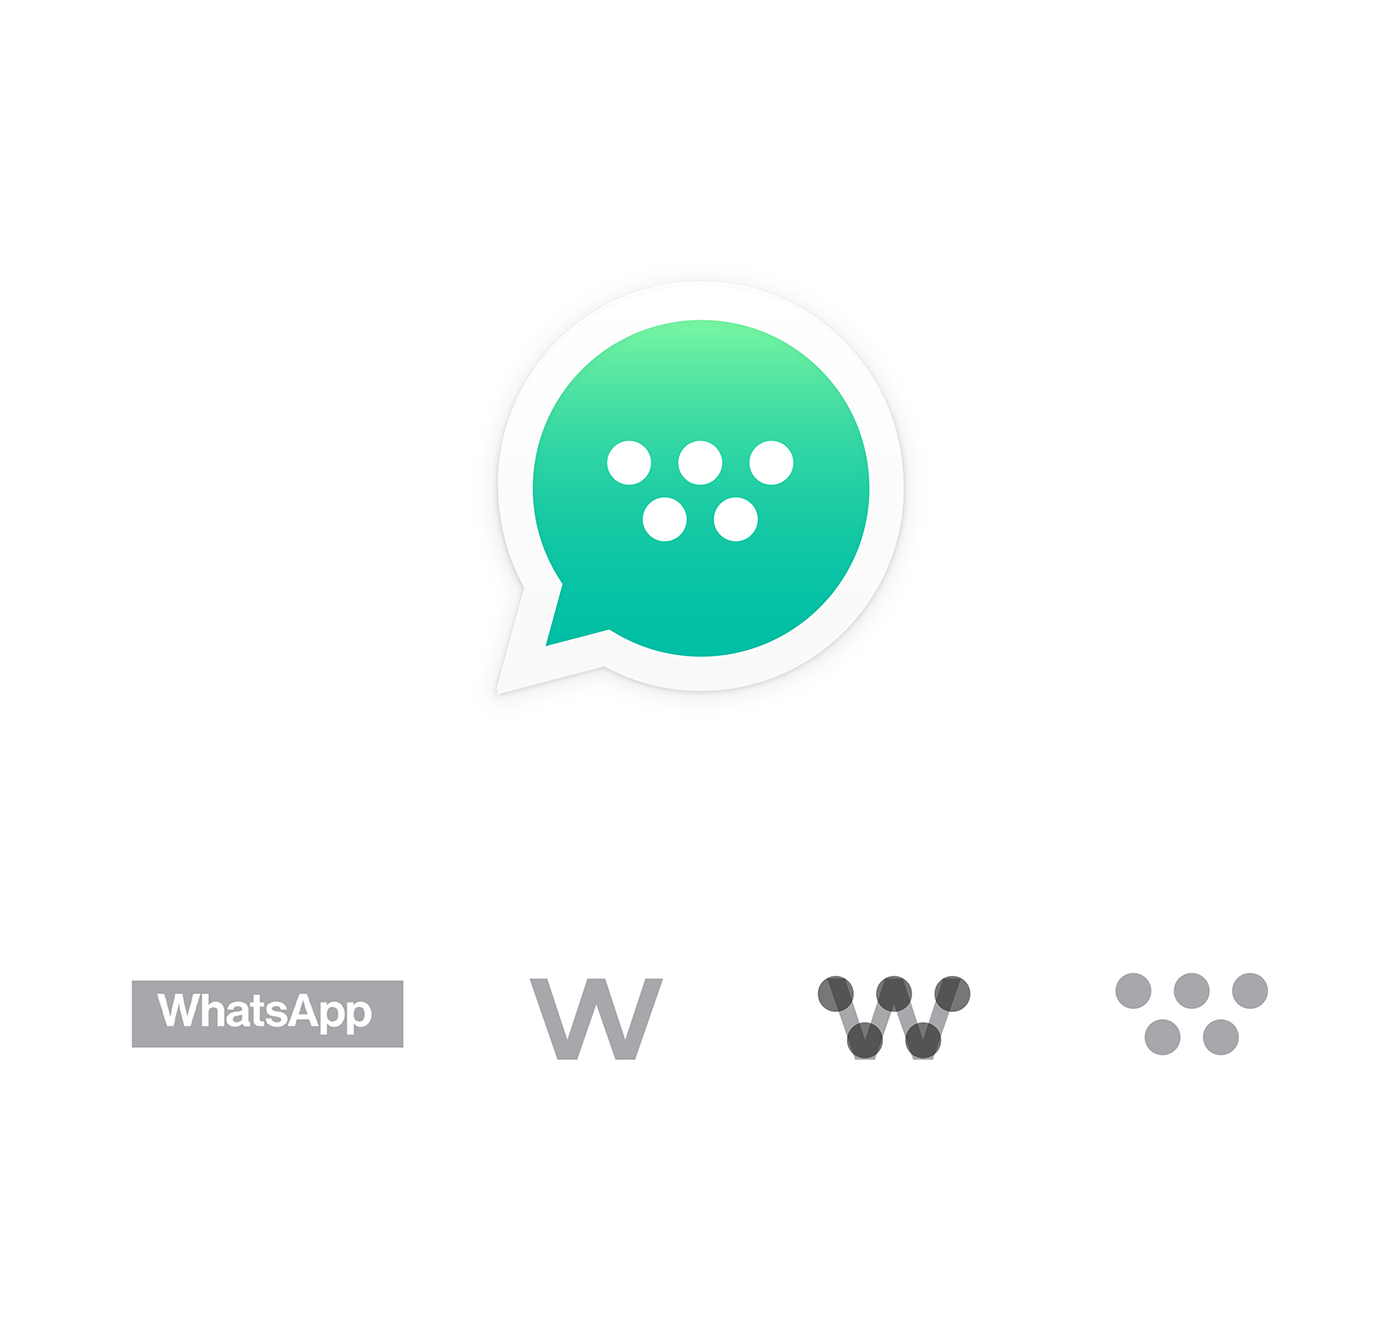 Rebranding WhatsApp and new idea for Fb Messenger. Only